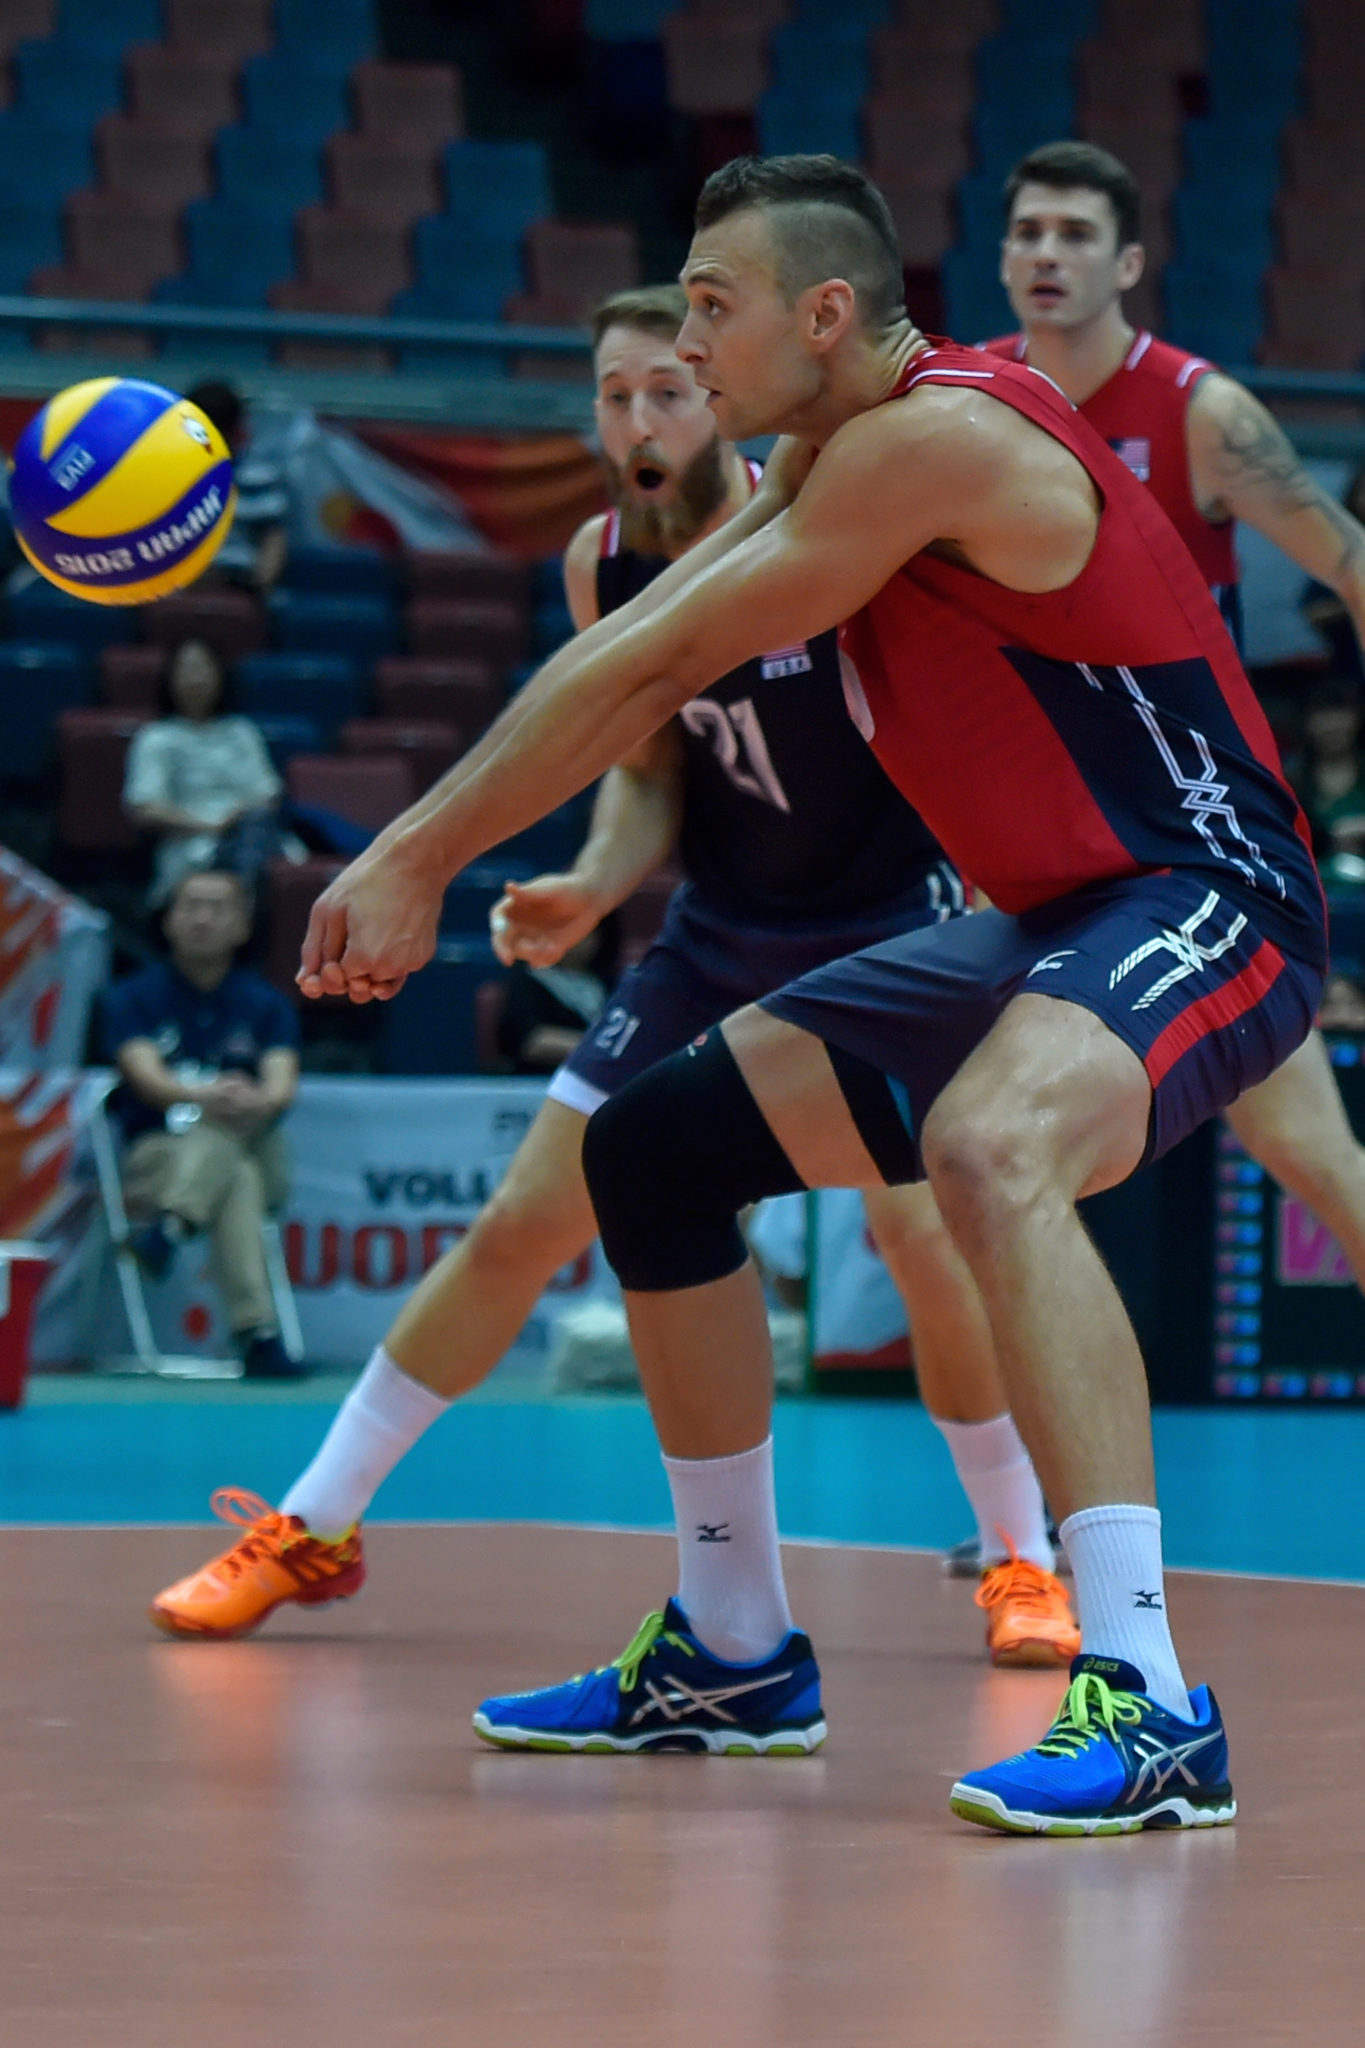 Former Team USA player Paul Lotman Returns To Indoor Volleyball